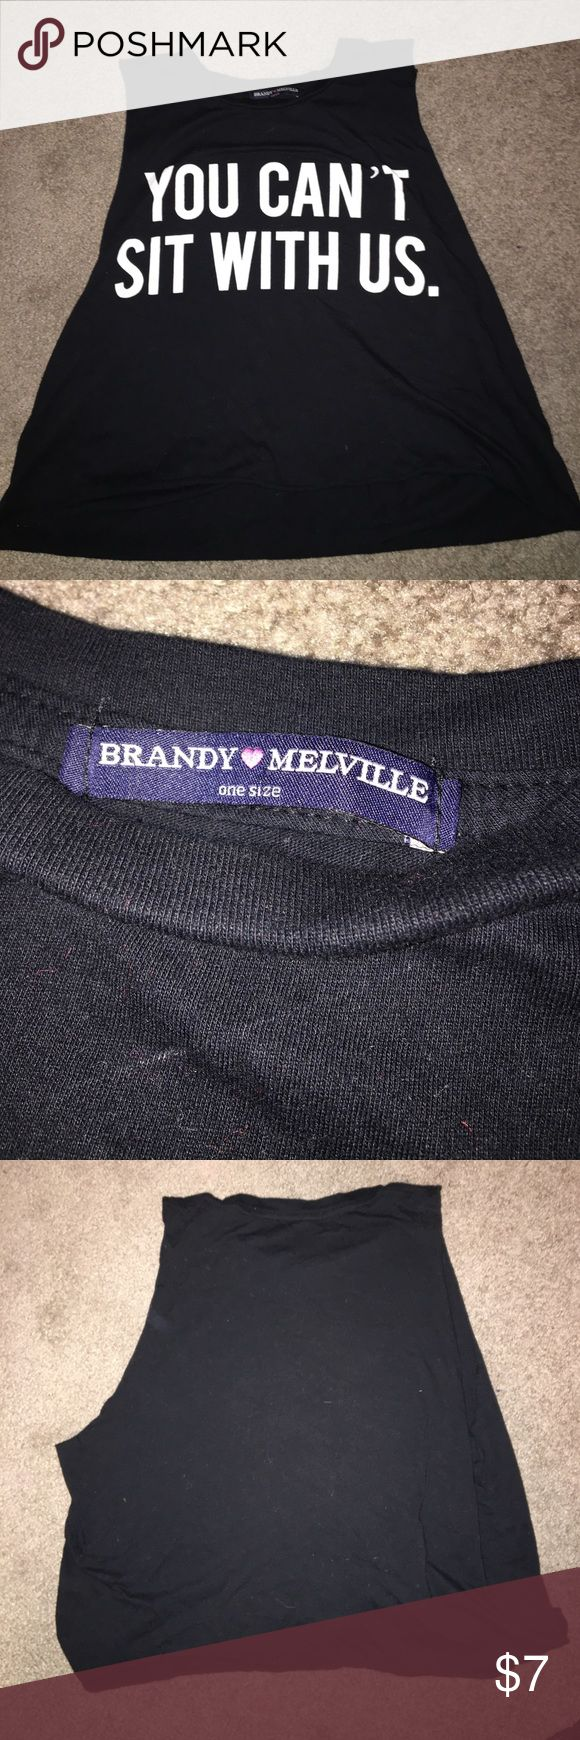 """""""You Cant't Sit With Us"""" Brandy Melville Top Crop Top. Brandy Melville. One Size, but cropped for S/M. Cute, Mean Girls! Brandy Melville Tops Crop Tops"""